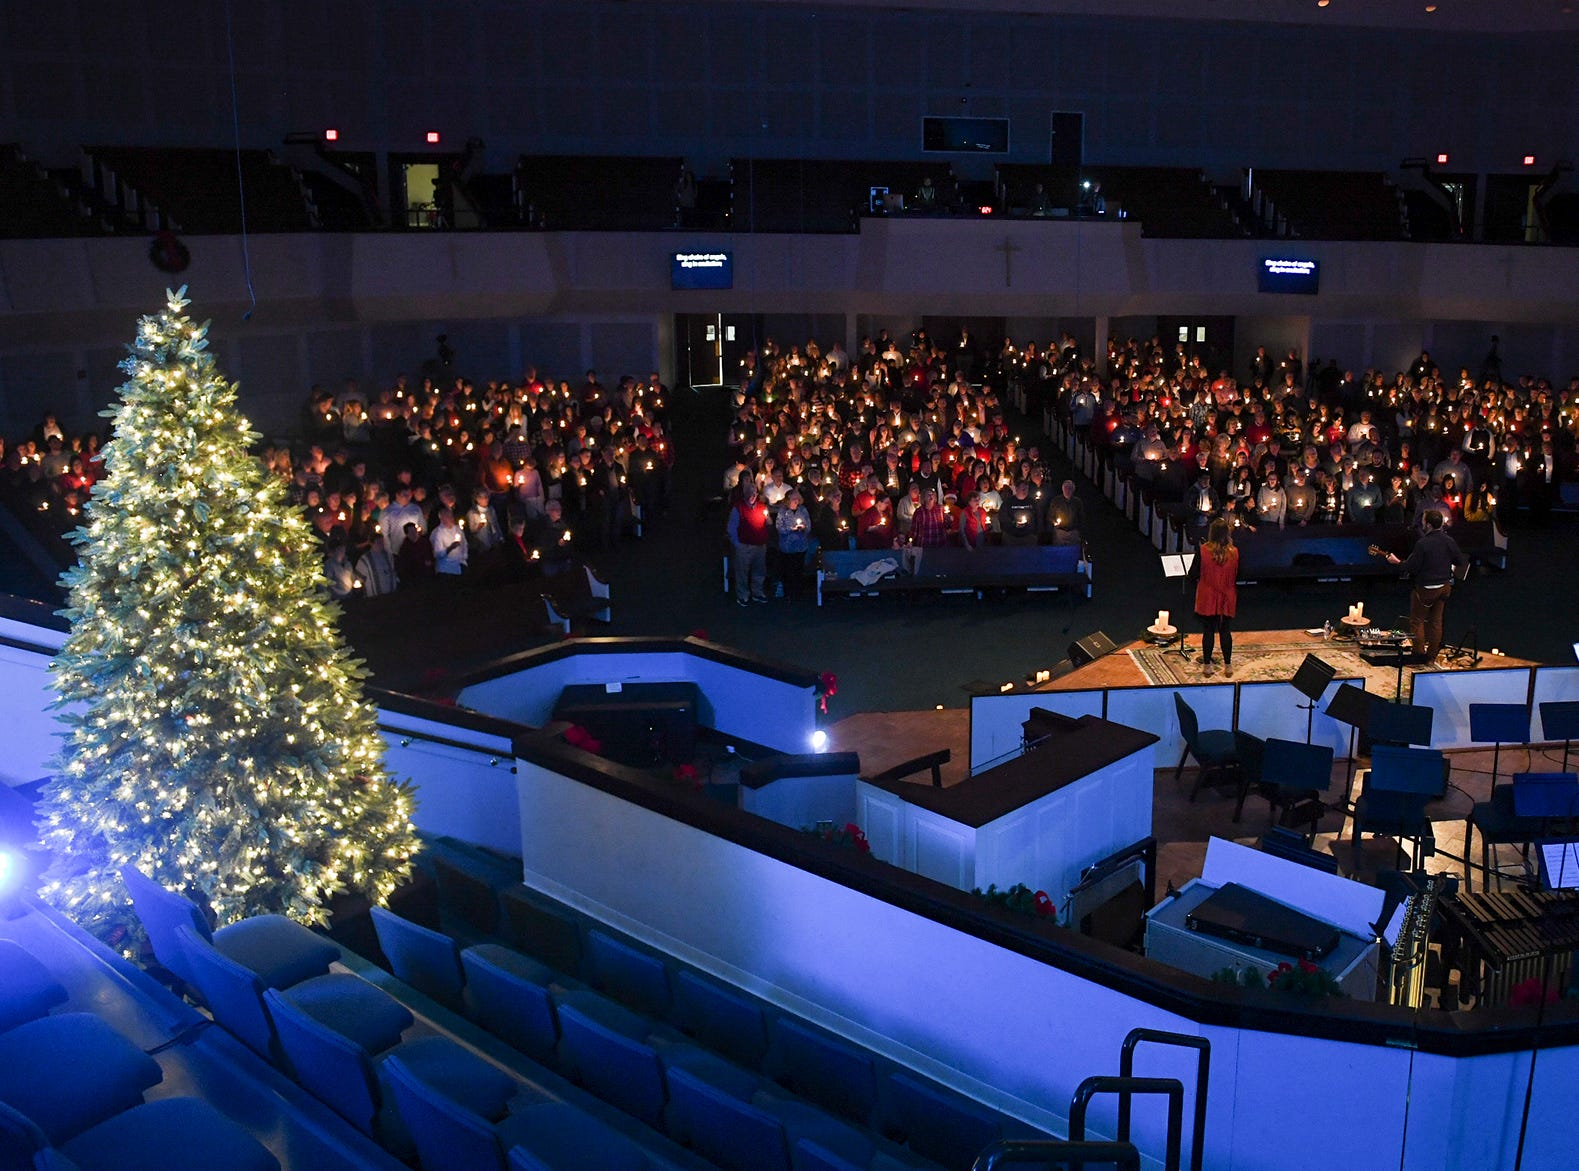 Members of the congregation at West Jackson Baptist Church hold up candles during the singing of Silent Night at Christmas Eve at West Jackson, Monday, Dec. 24.